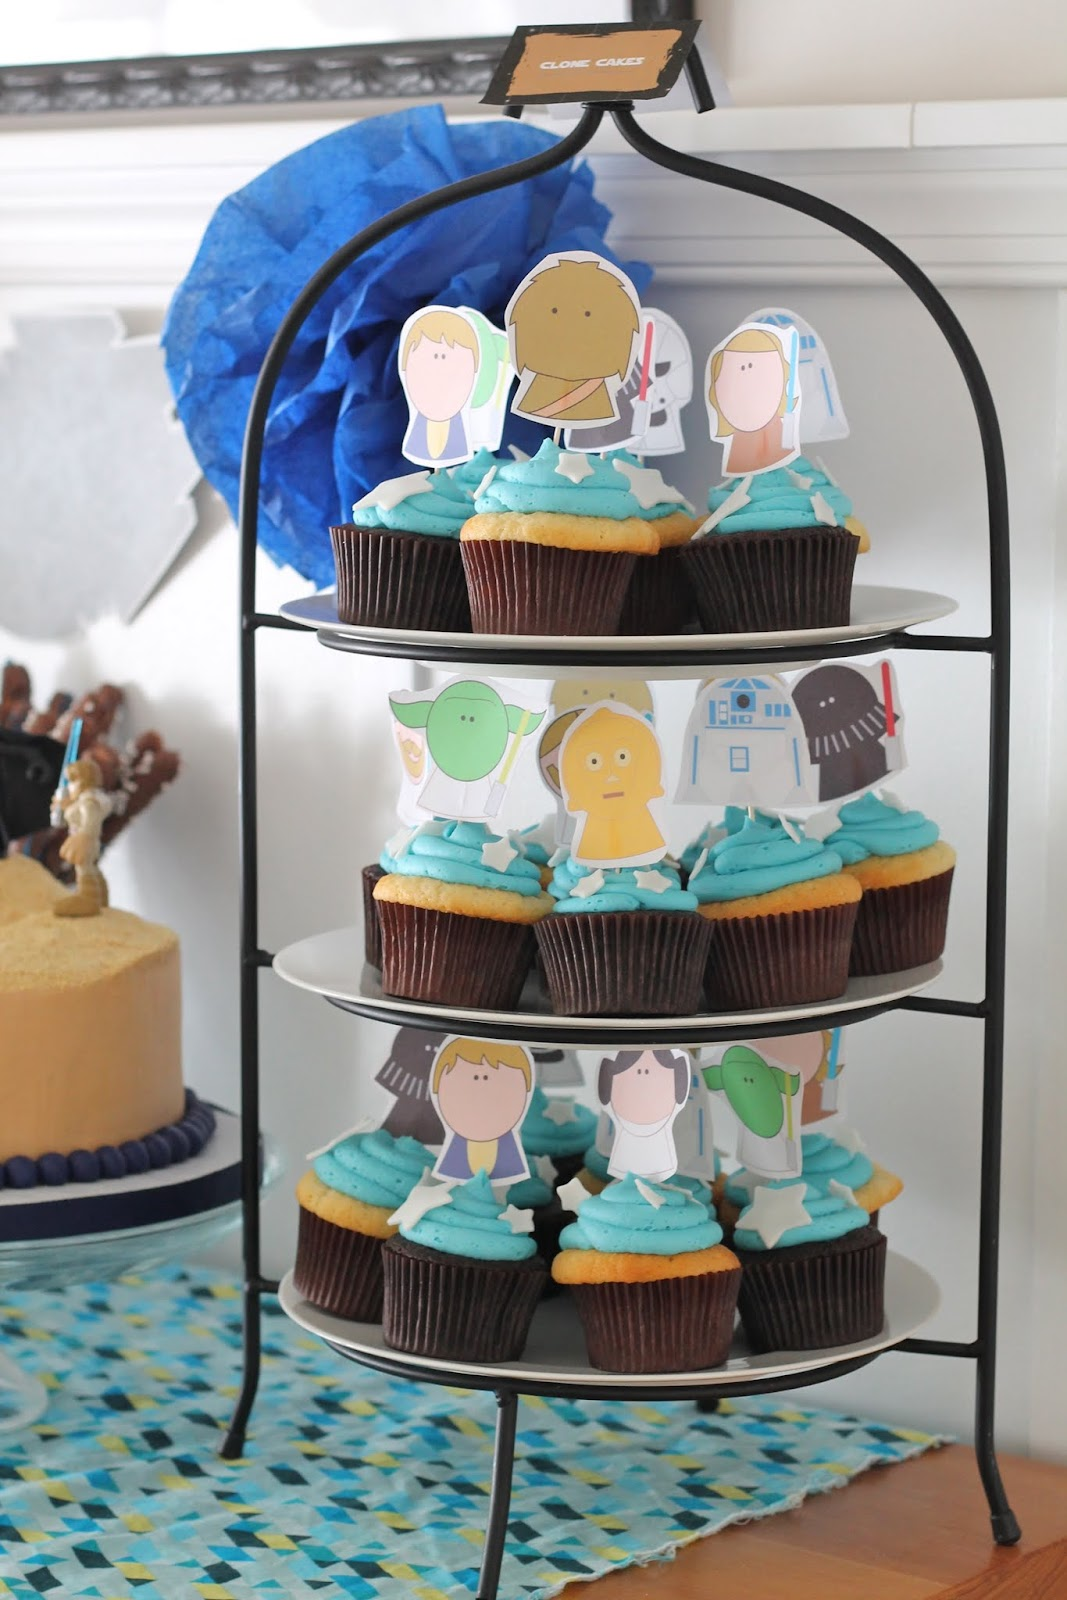 Star Wars Themed Baby Shower - welcometothemousehouse.com